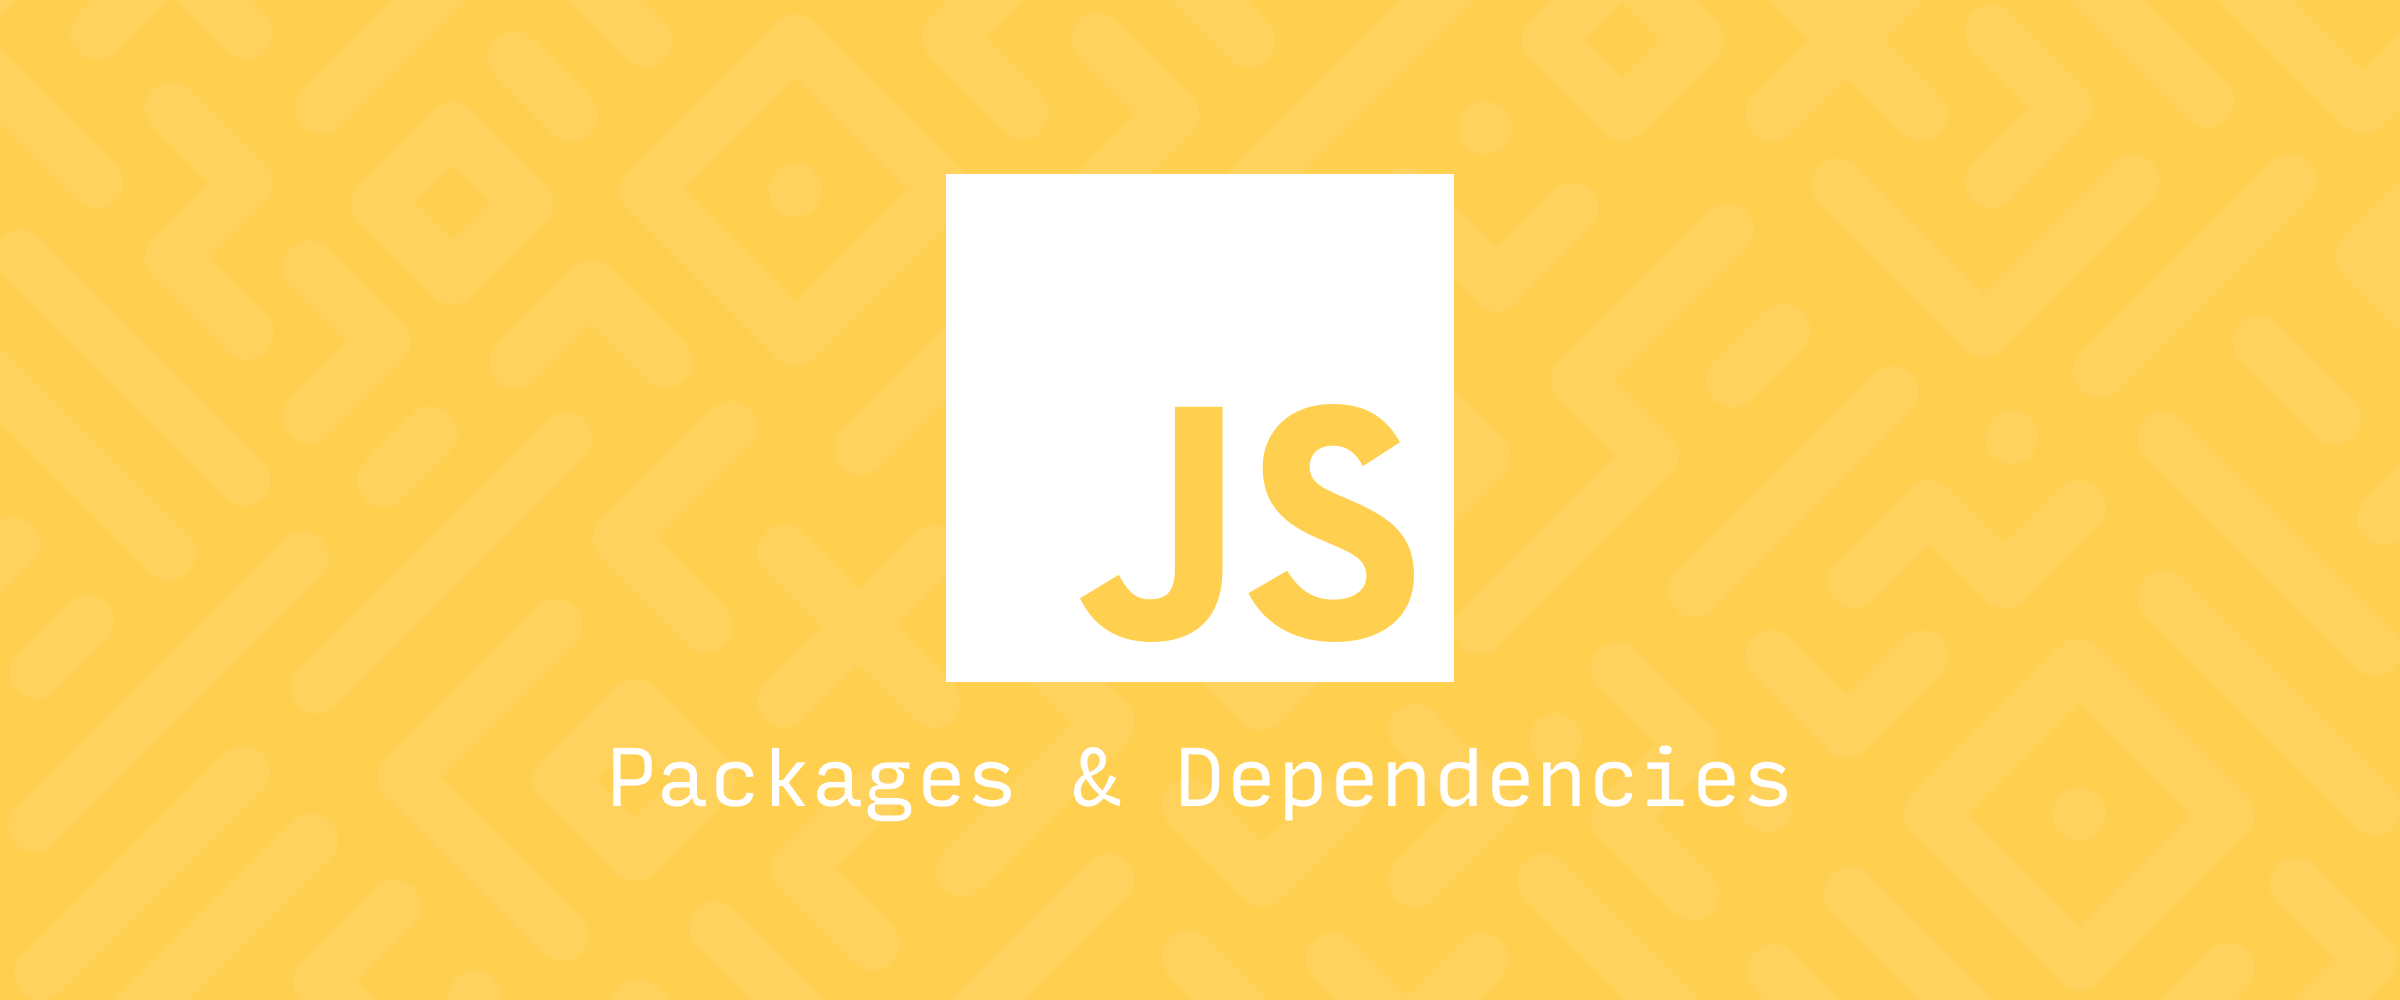 What are JavaScript packages and dependencies?